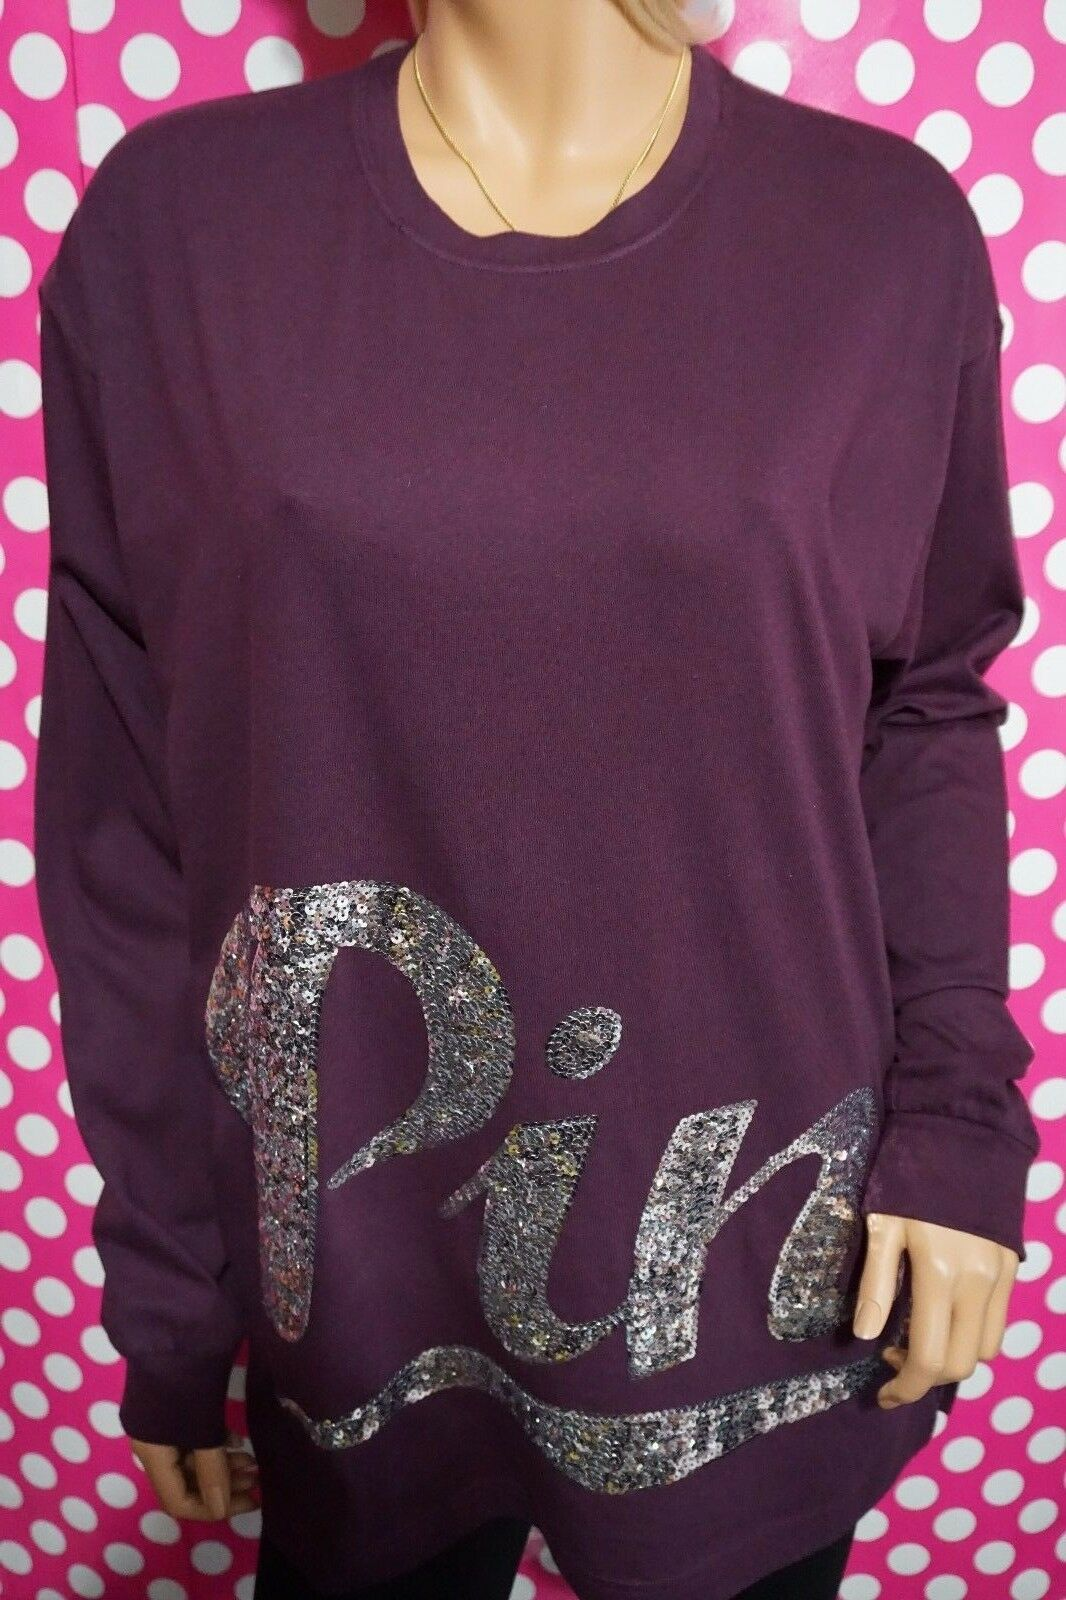 VICTORIA'S SECRET PINK BLING MAROON CAMPUS LONG SLEEVE T-SHIRT CREW XS S M